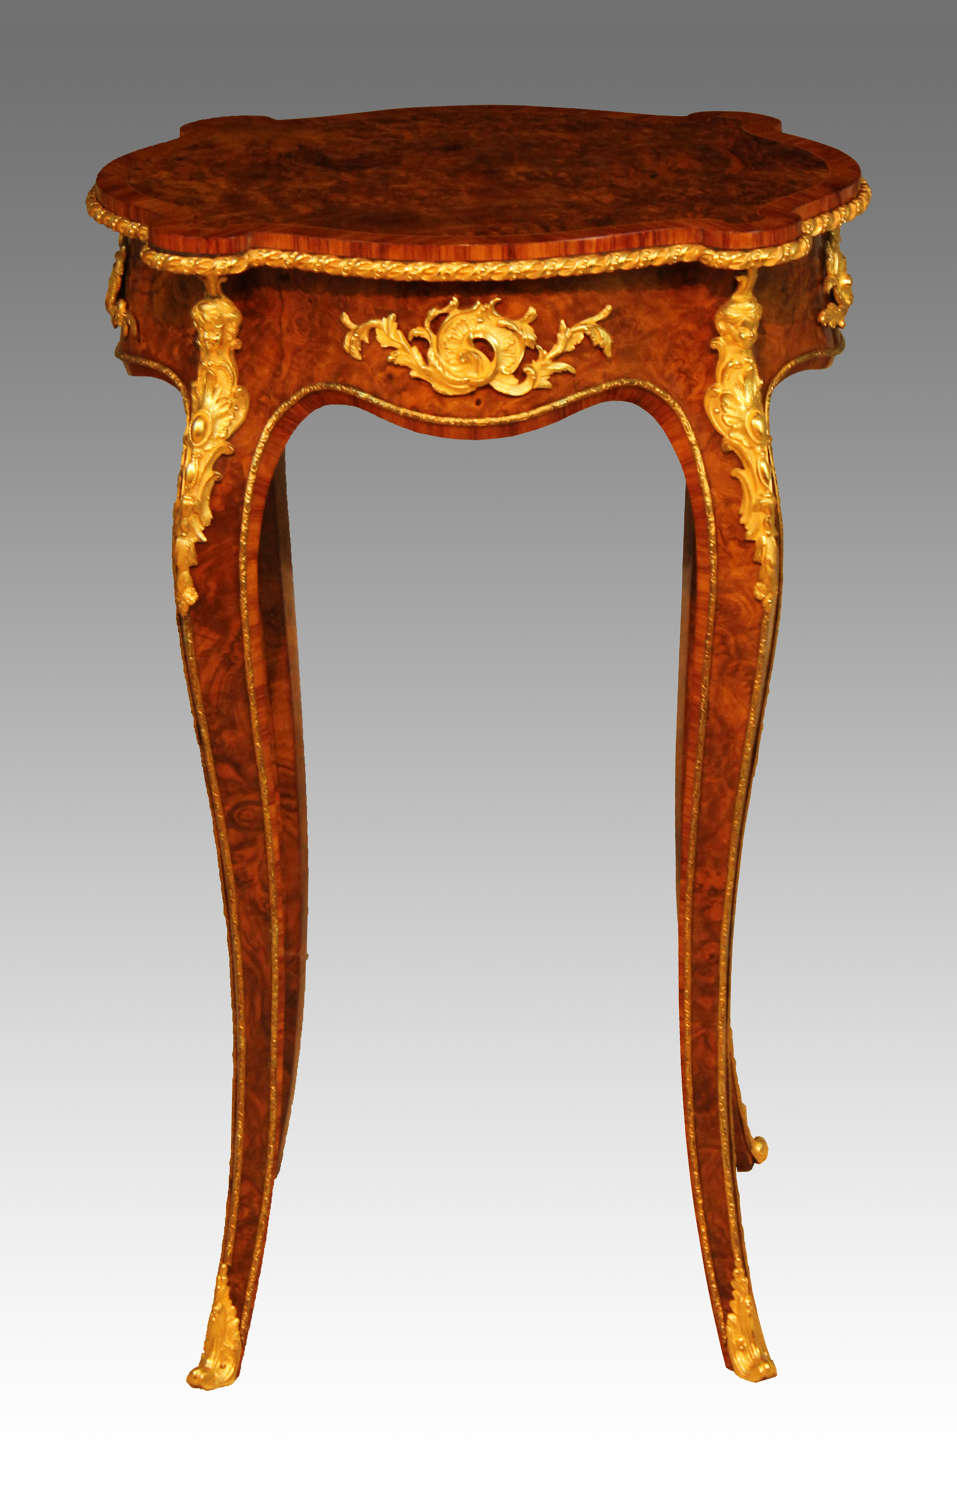 A Victorian Burr Walnut Inlaid and Ormolu Mounted Table